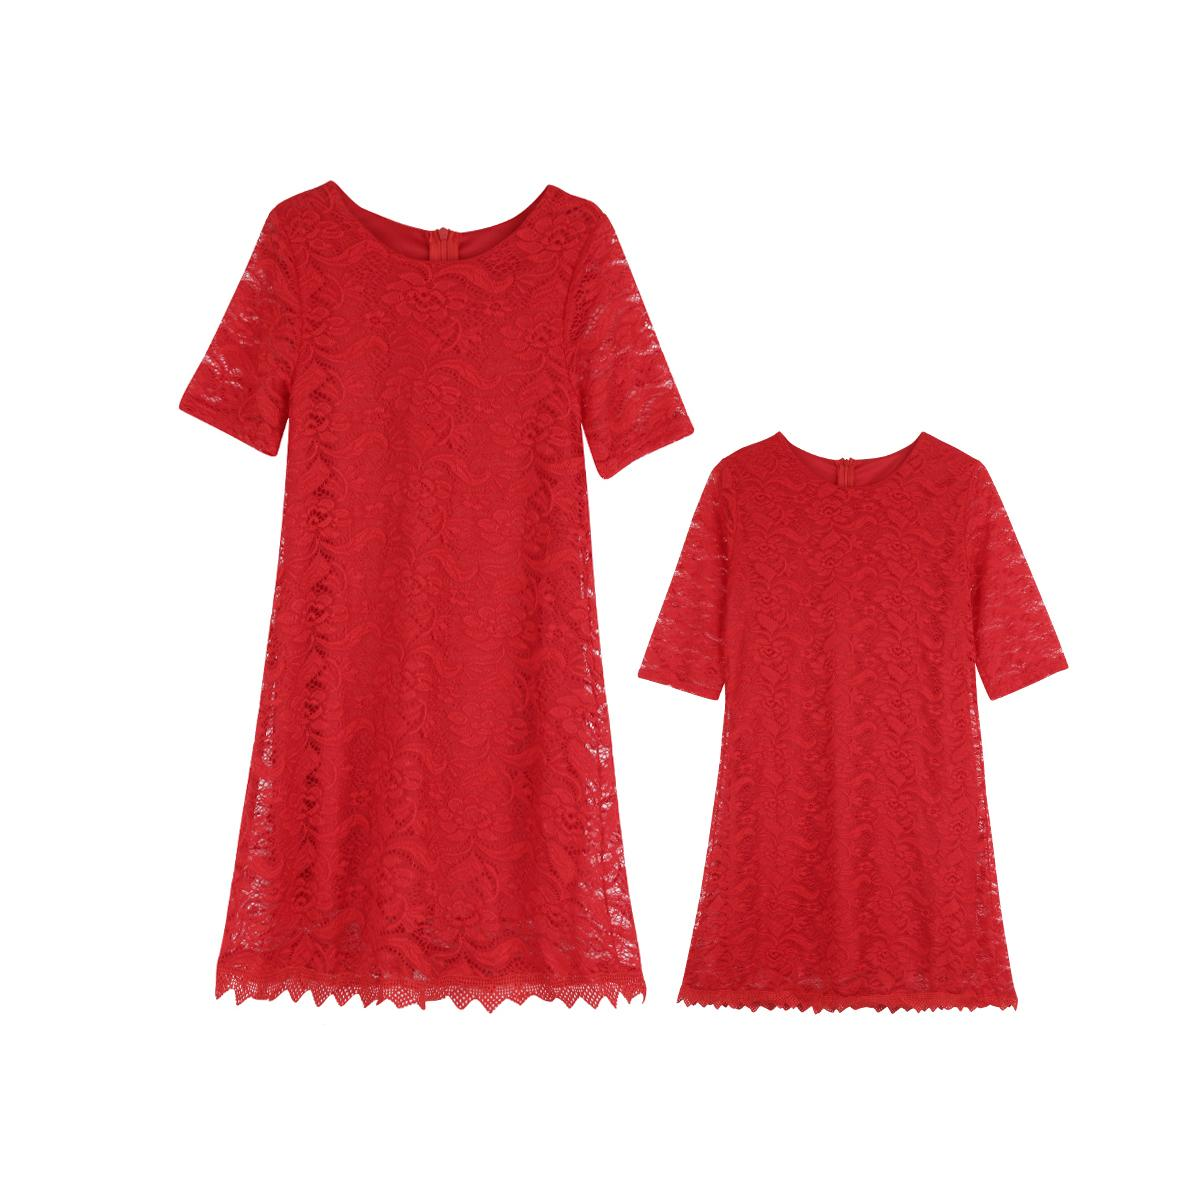 Emmababy Famille Matching Mère et fille dentelle Robe courte demi manches Zippers Casual Vêtements famille Tenues